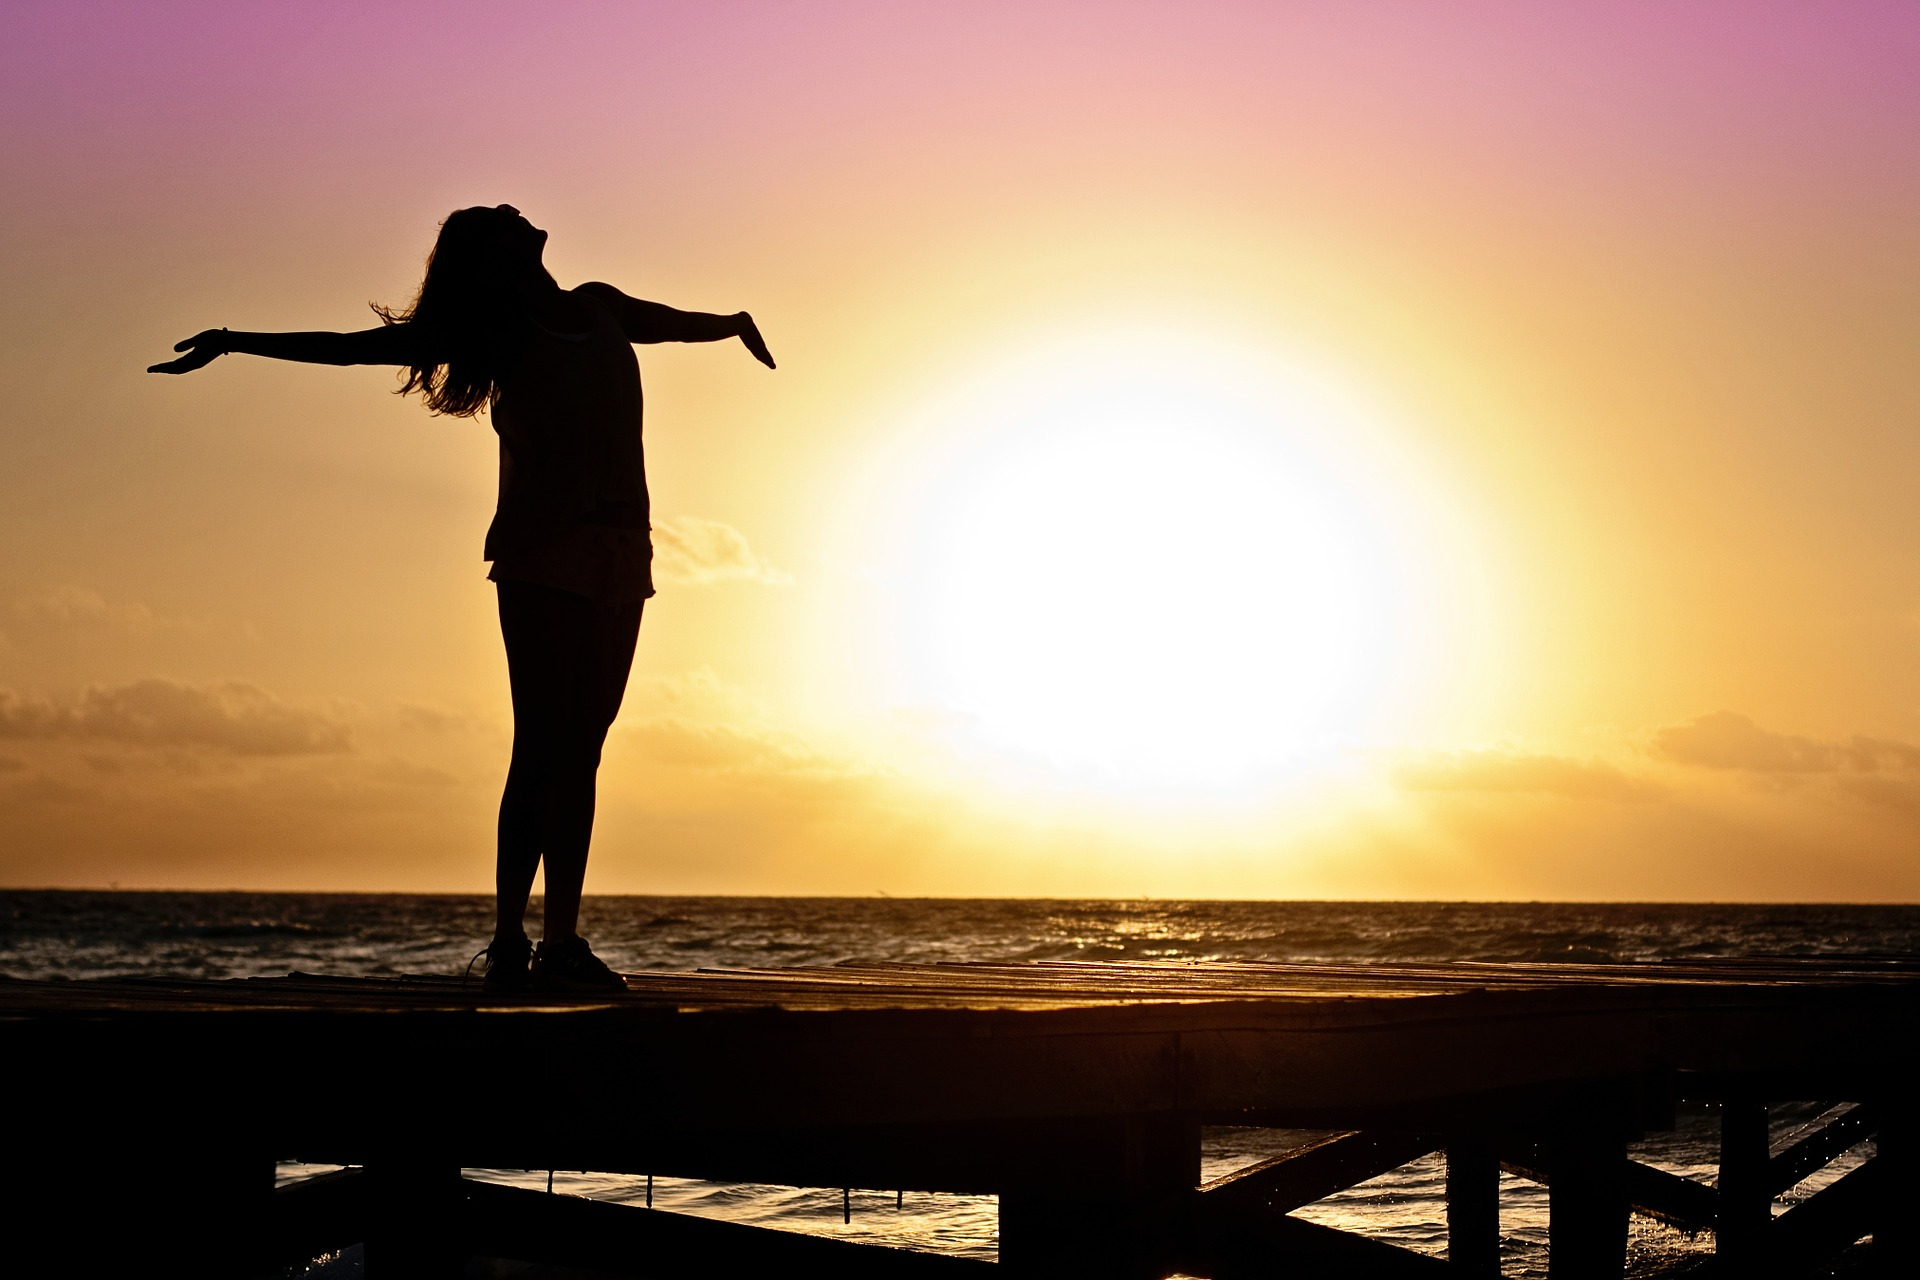 Woman standing on a dock, taking in vitamin D from sunlight.